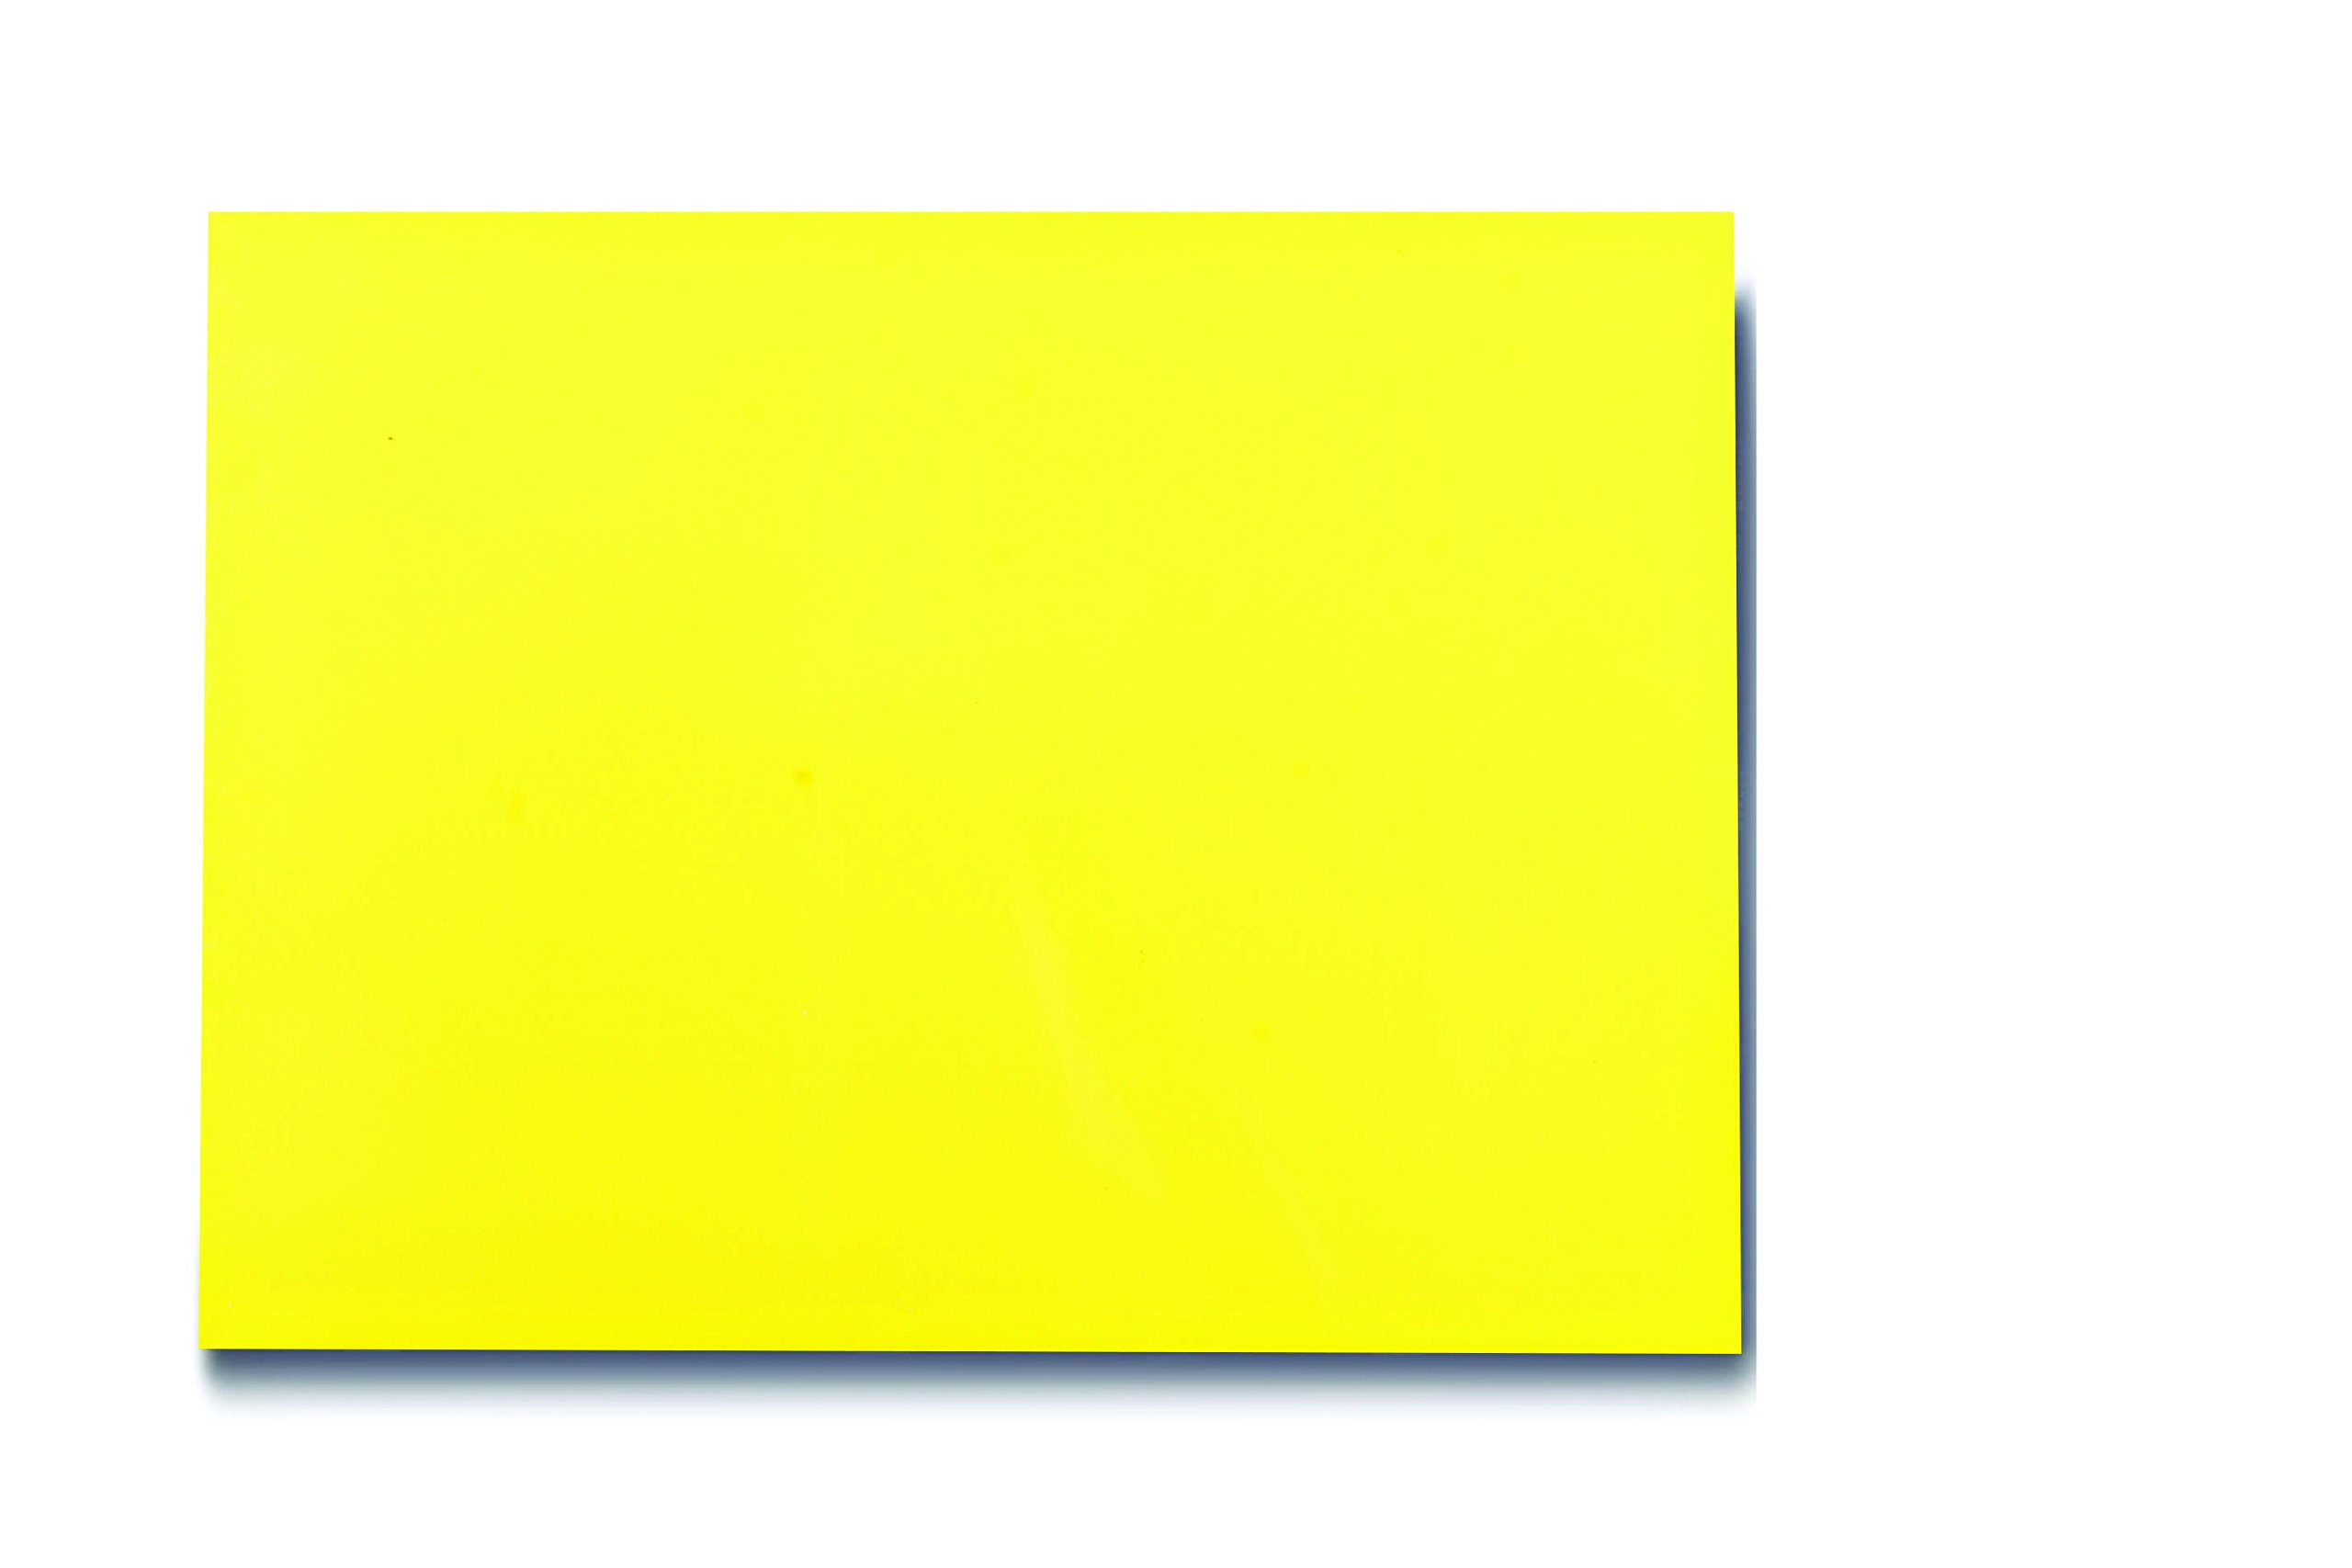 25 Dry Erase Magnet Shelf Labels 2'' x 3'' - Yellow - 20 mil